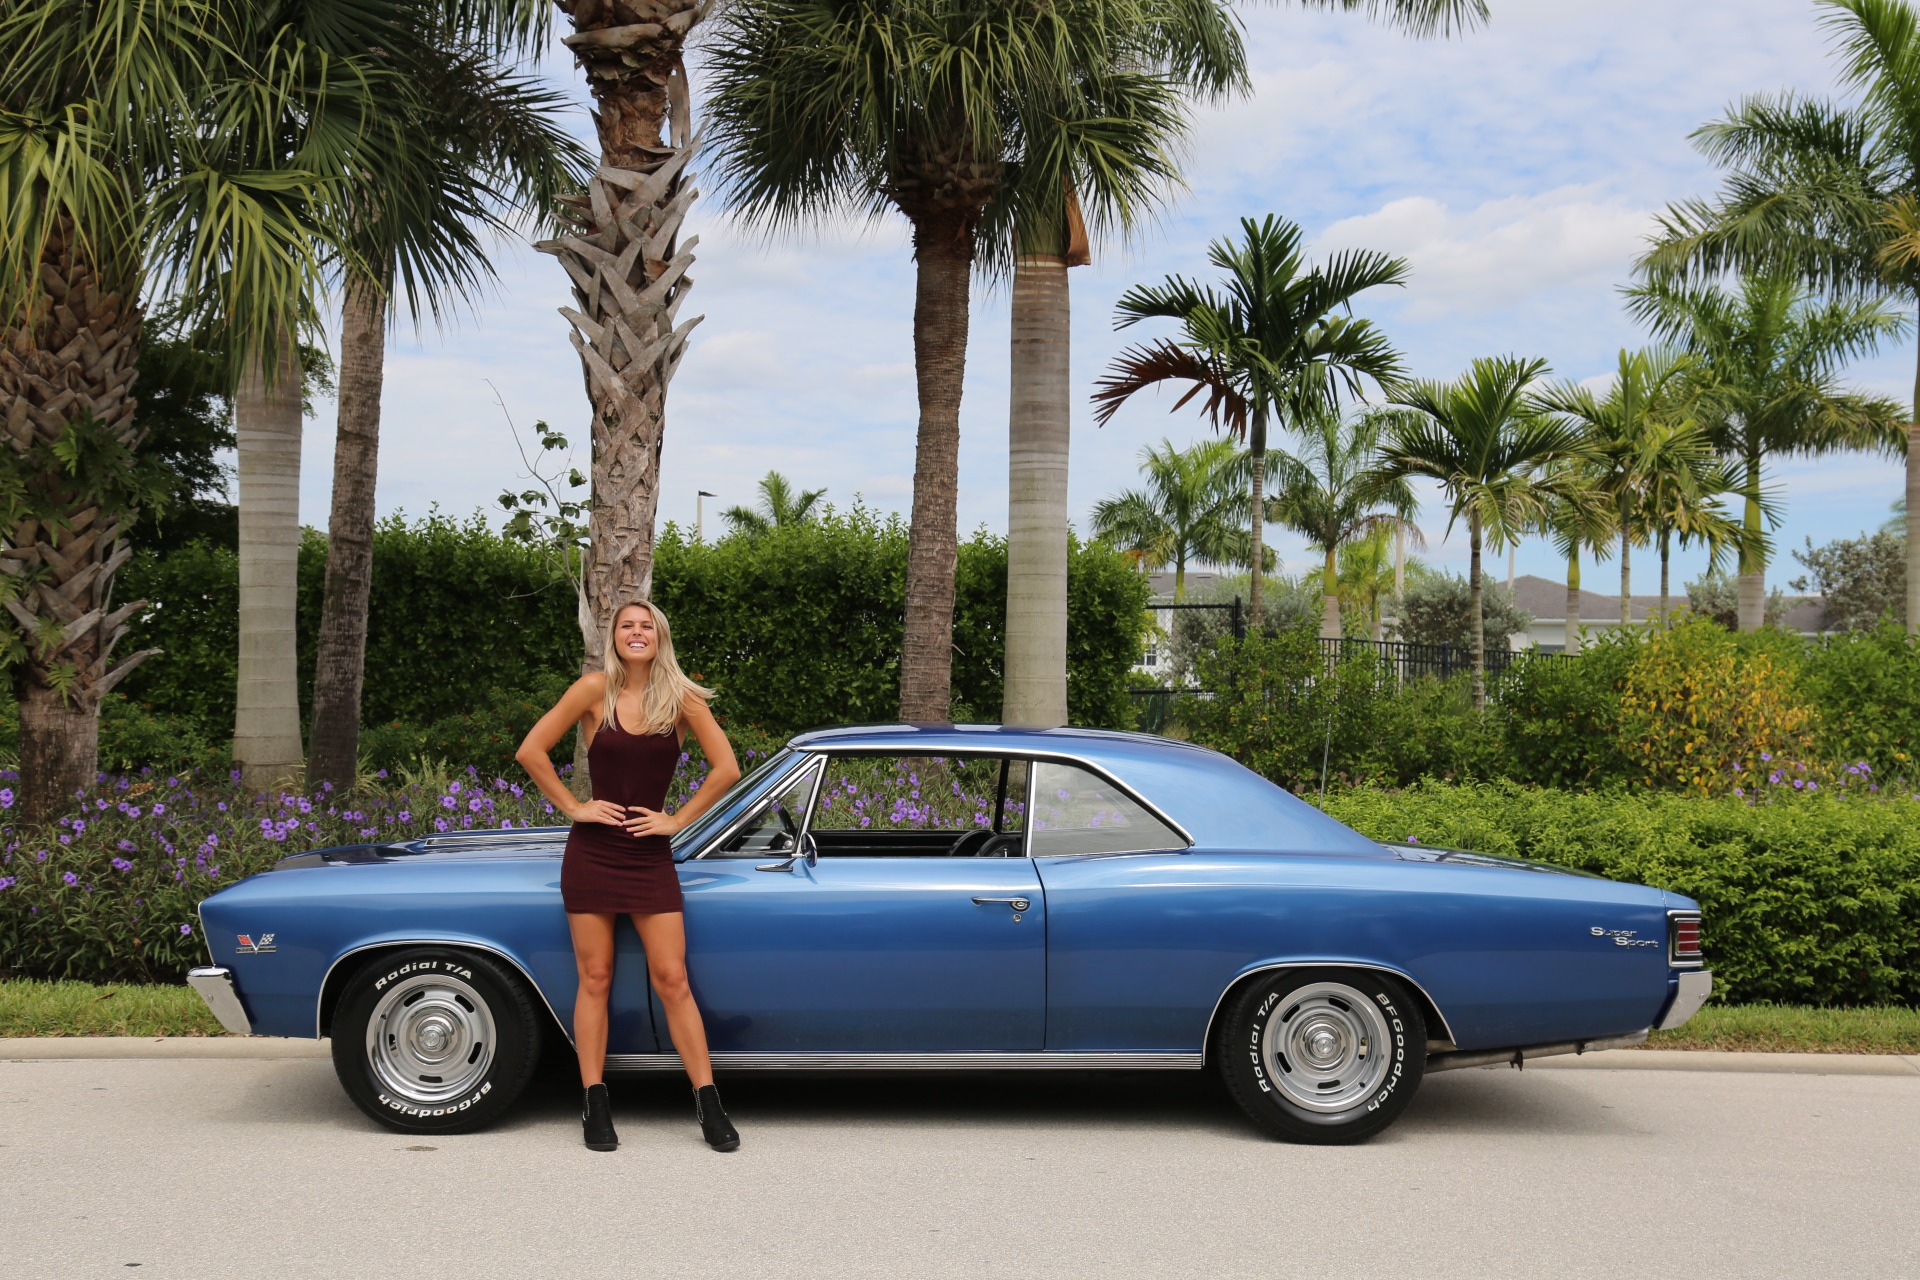 Used 1967 Chevrolet Chevelle SS Super Sport 396 for sale $47,000 at Muscle Cars for Sale Inc. in Fort Myers FL 33912 2